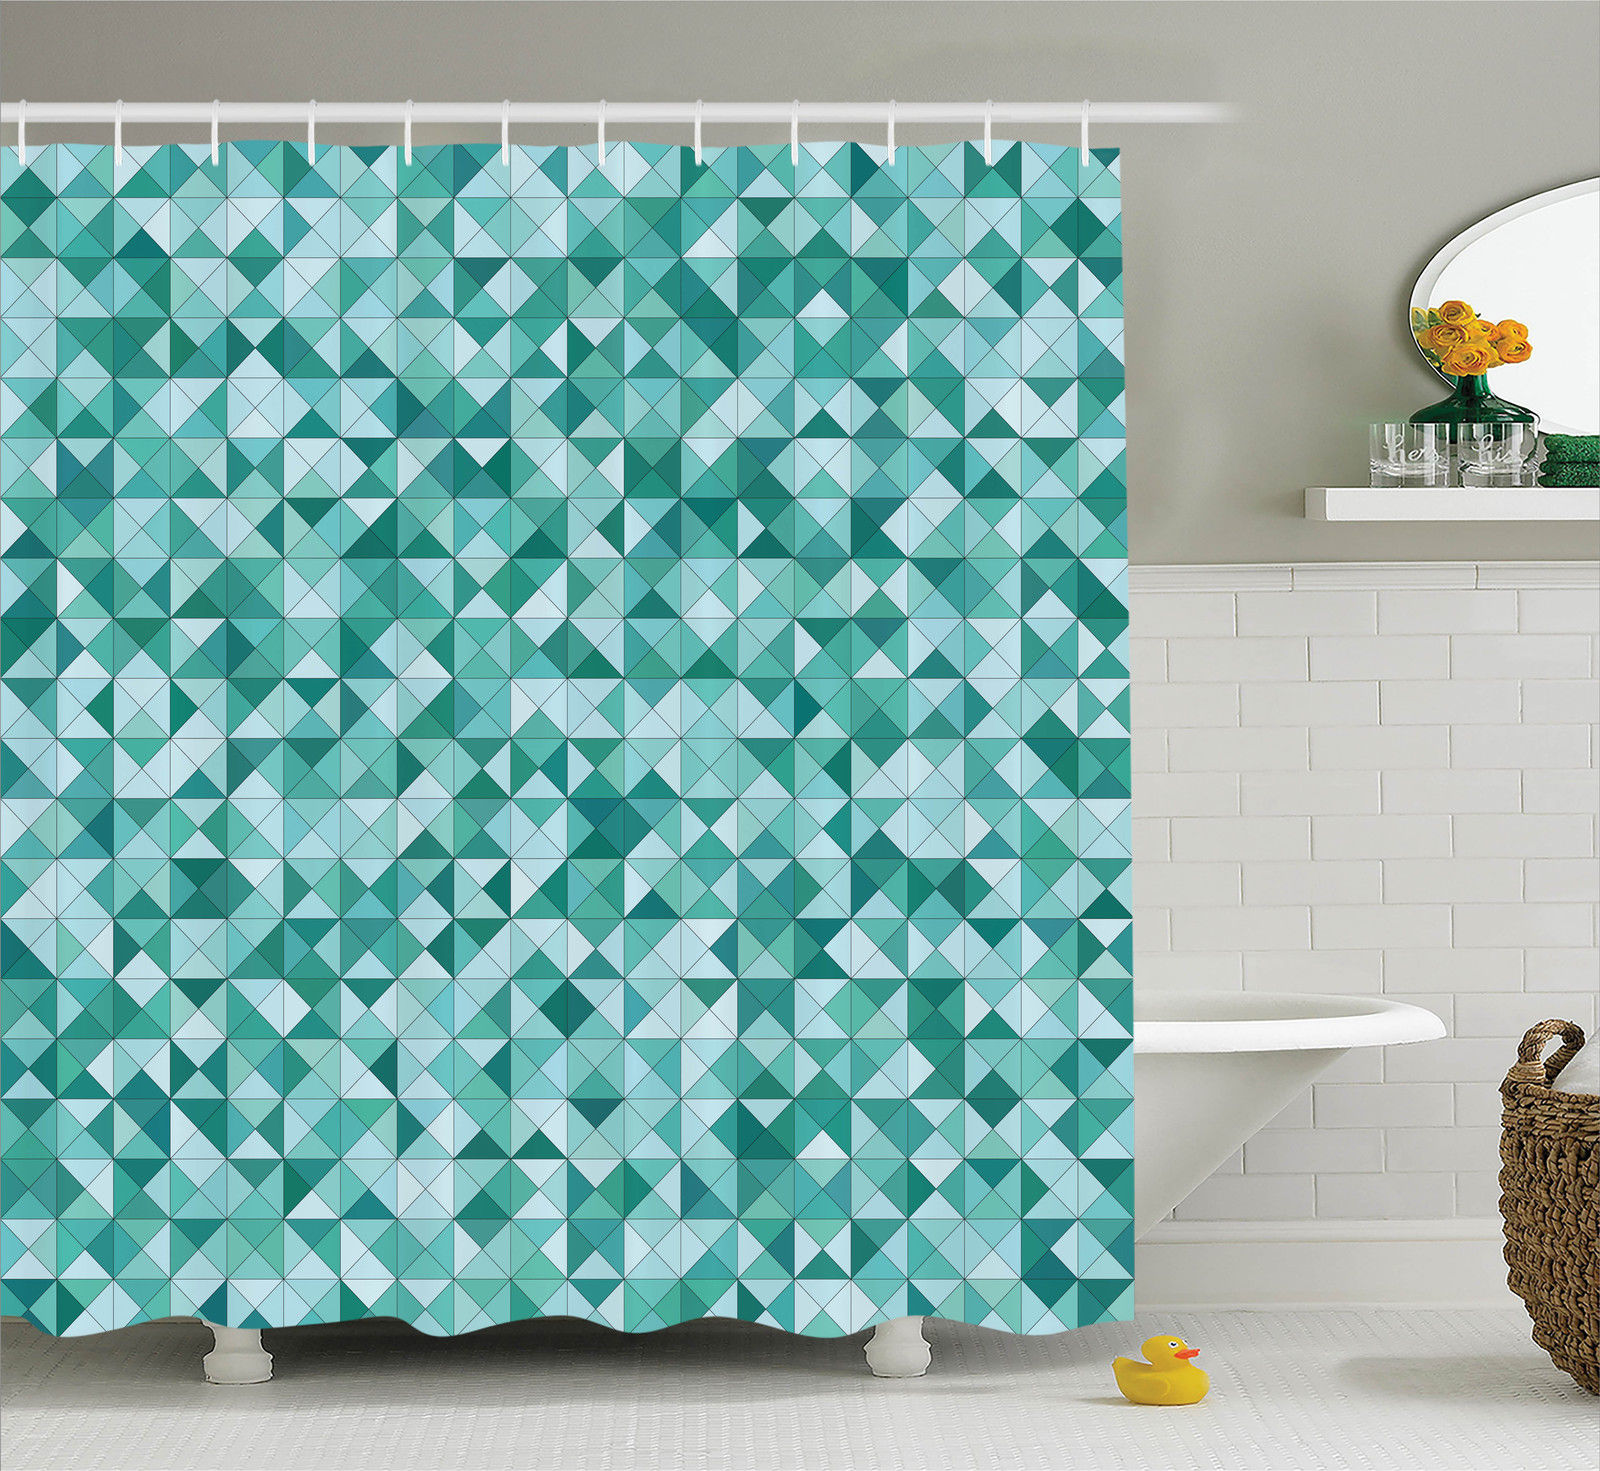 Teal Decor  Triangle Mosaic Polygon Shapes Decorative Lights Shadows Effect Illustration, Bathroom Accessories, 69W X 84L Inches Extra Long, By Ambesonne